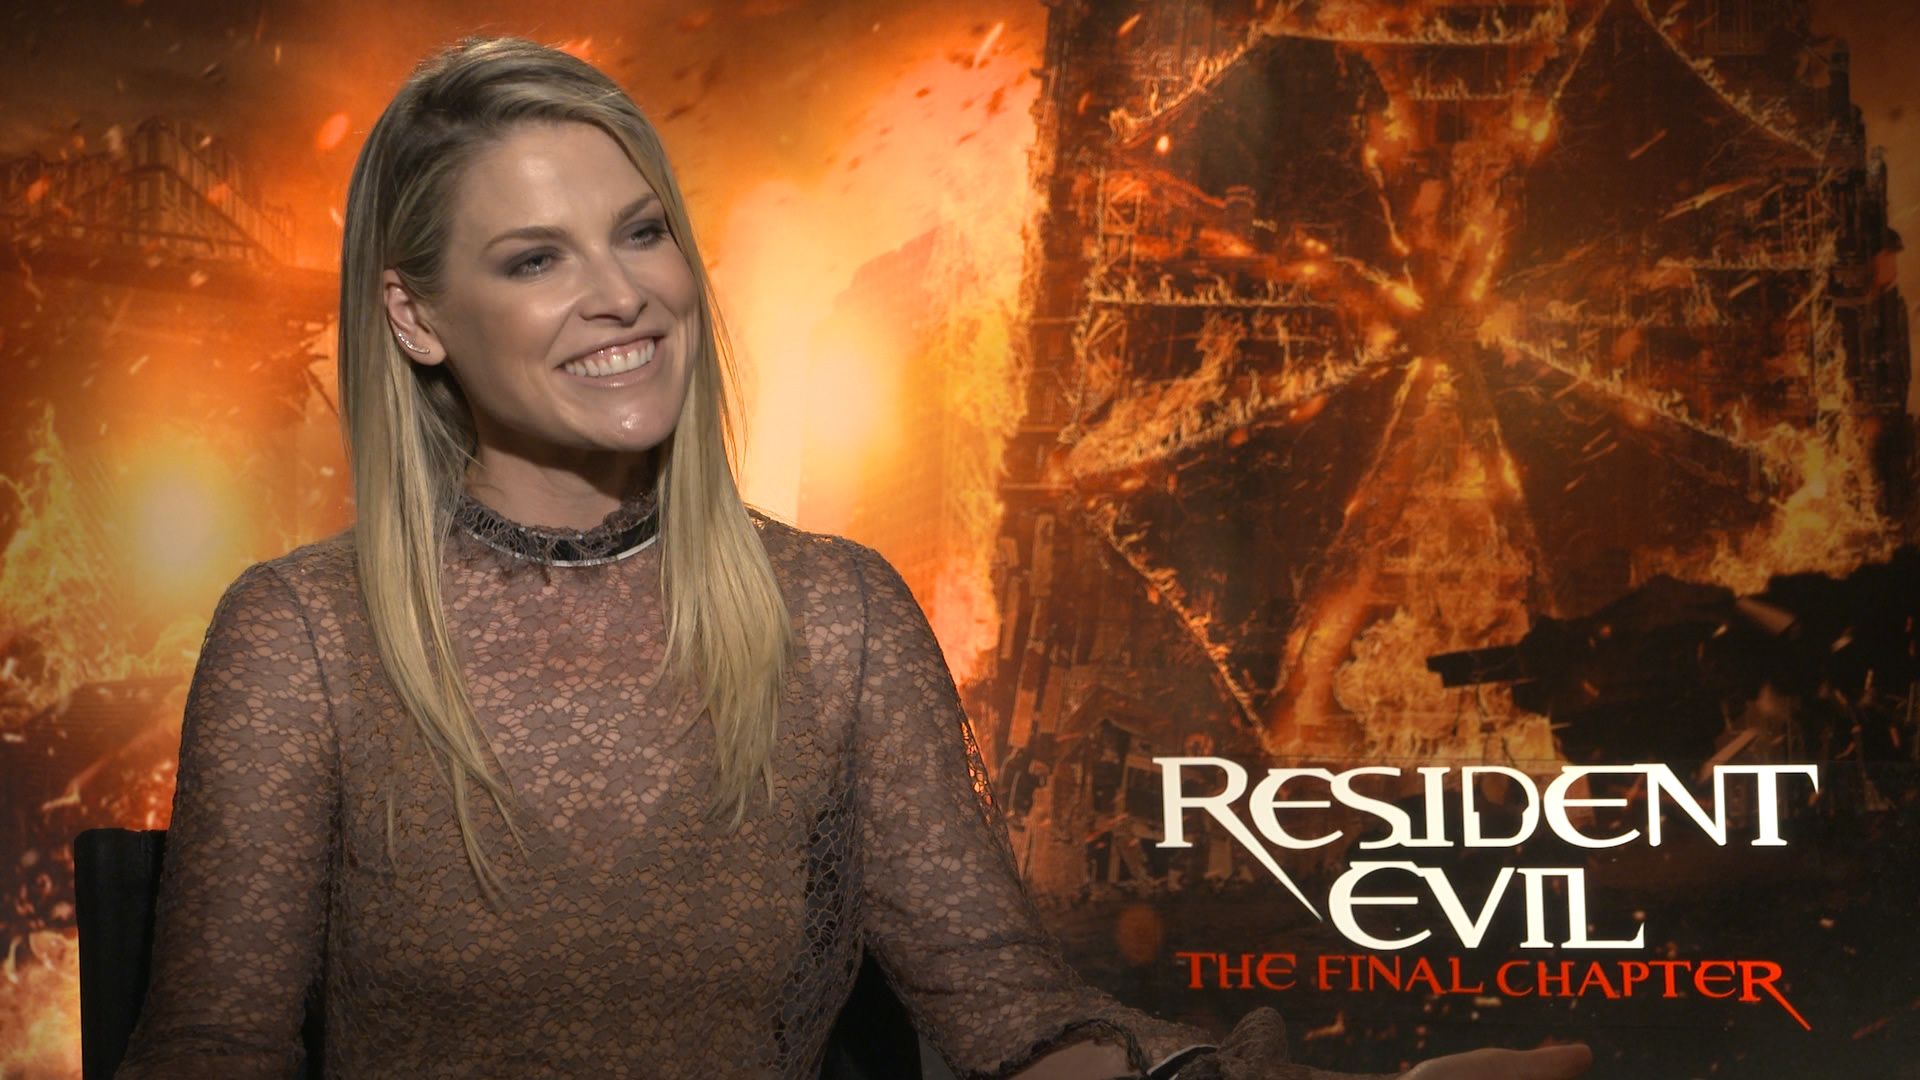 Resident Evil The Final Chapter Interview: Ali Larter On Why The Resident Evil Films Have Been So